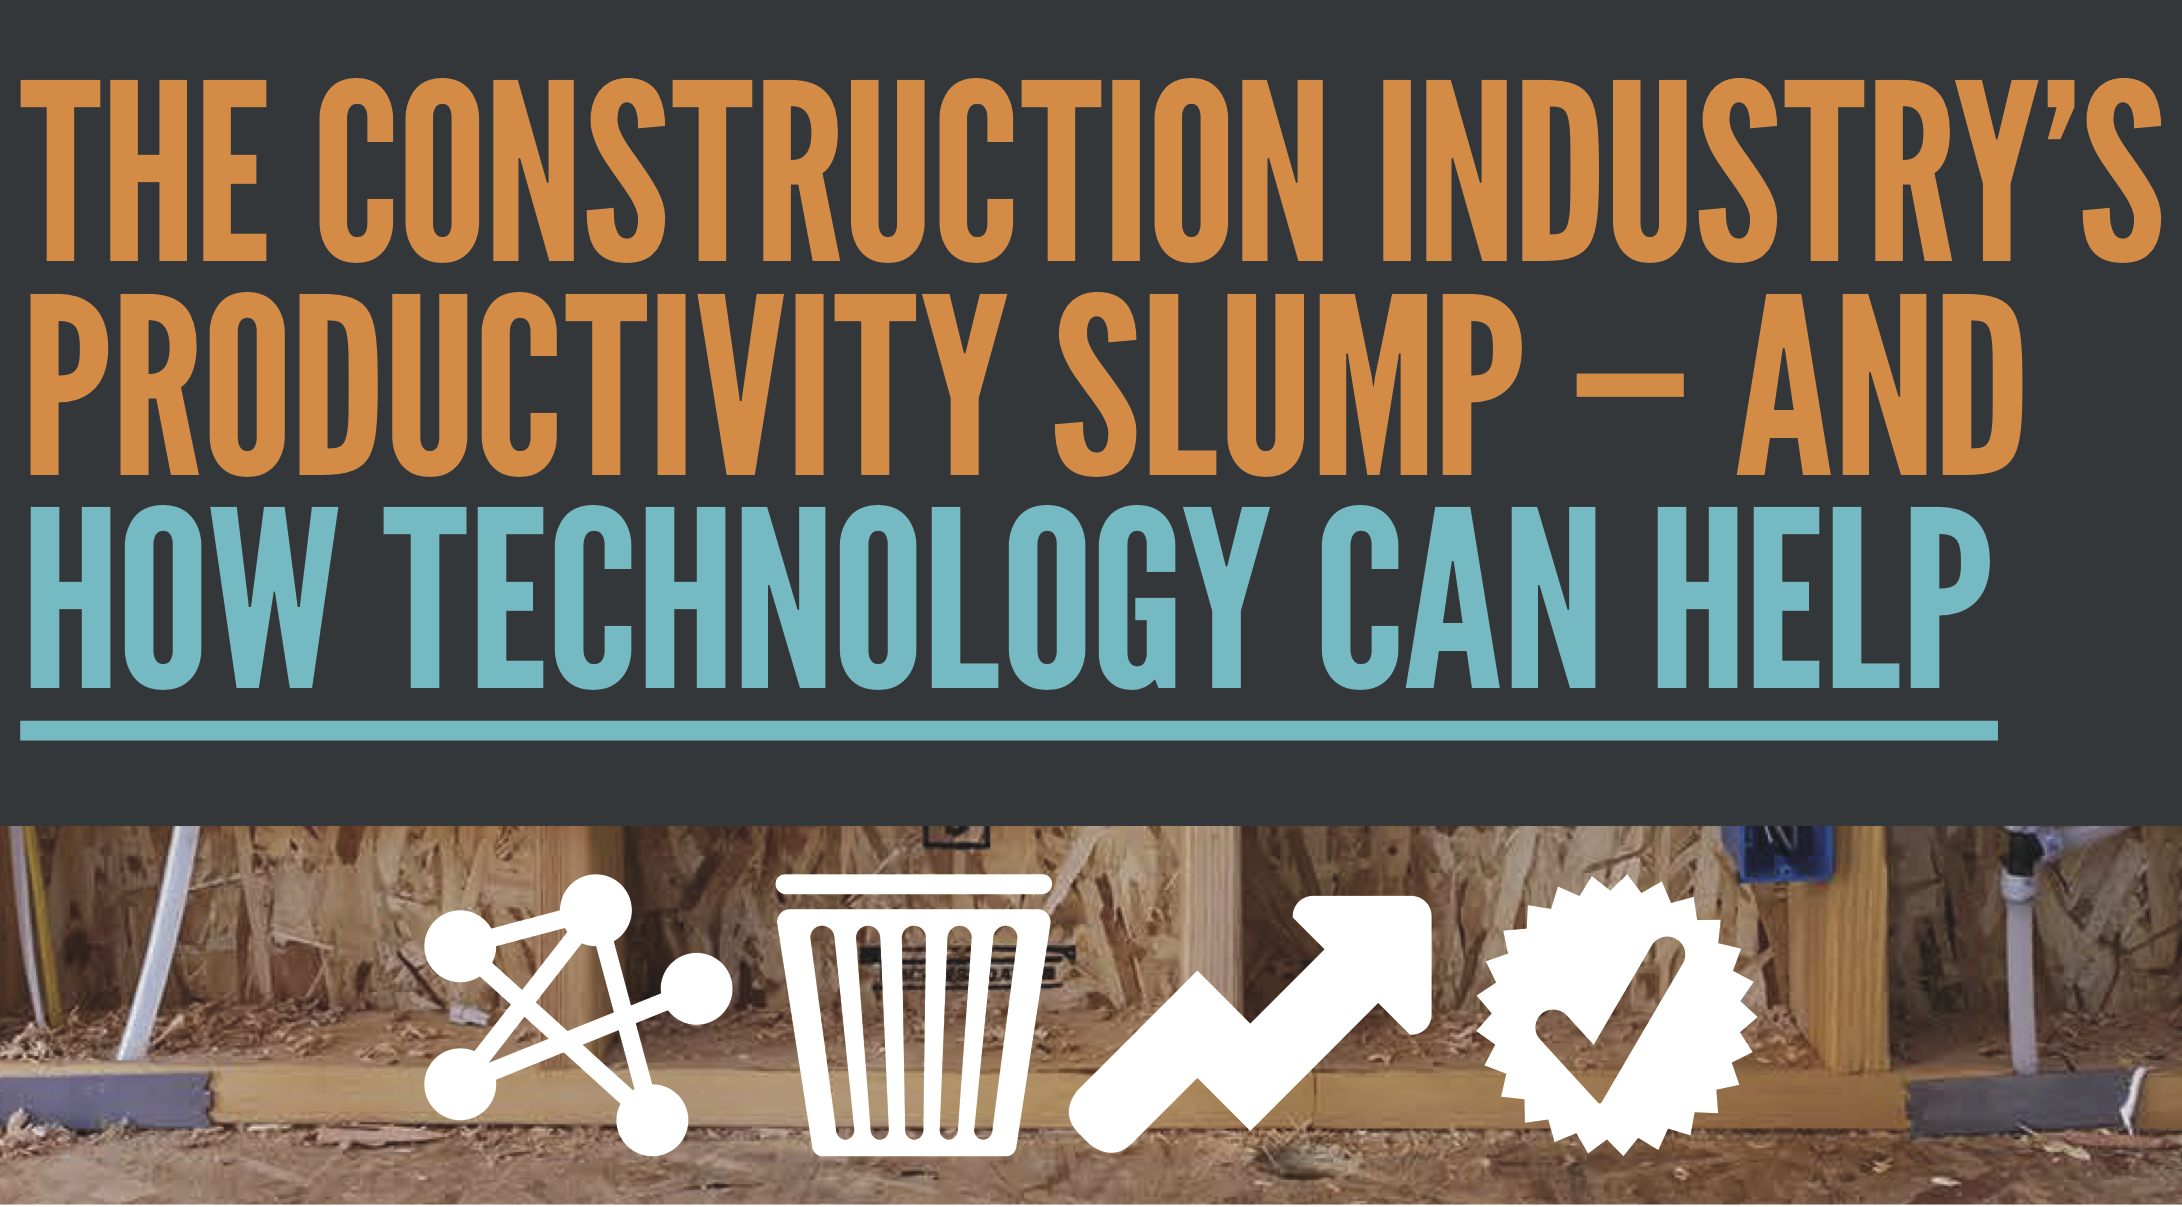 The Construction Industry's Productivity Slump - And How Technology Can Help